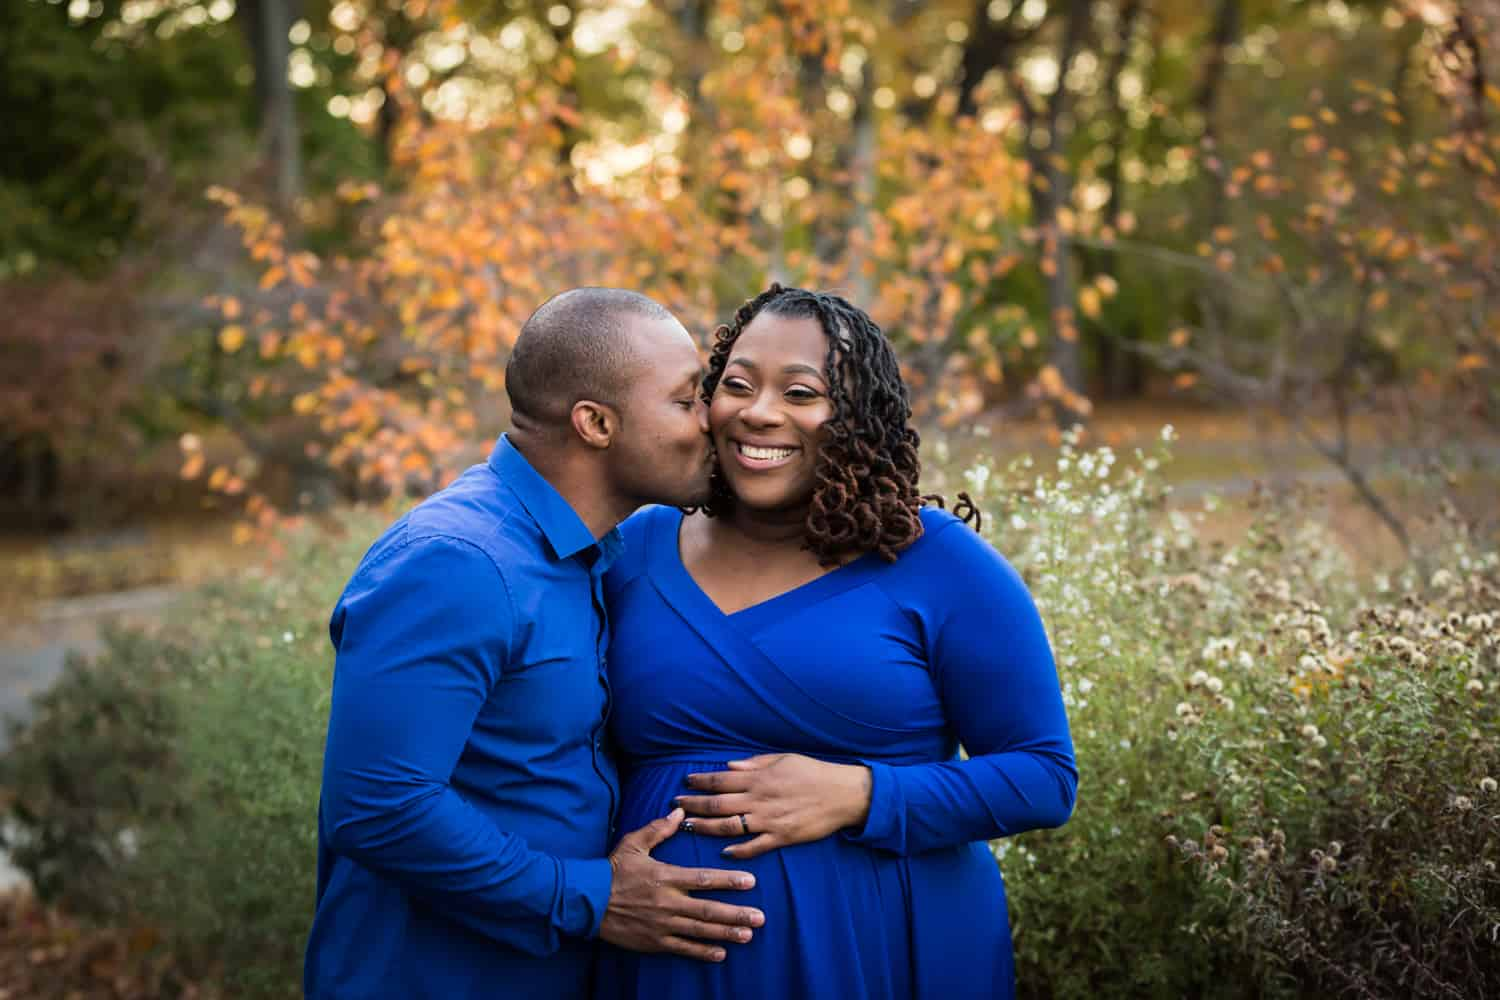 Man kissing woman's cheek during maternity photo shoot in Forest Park